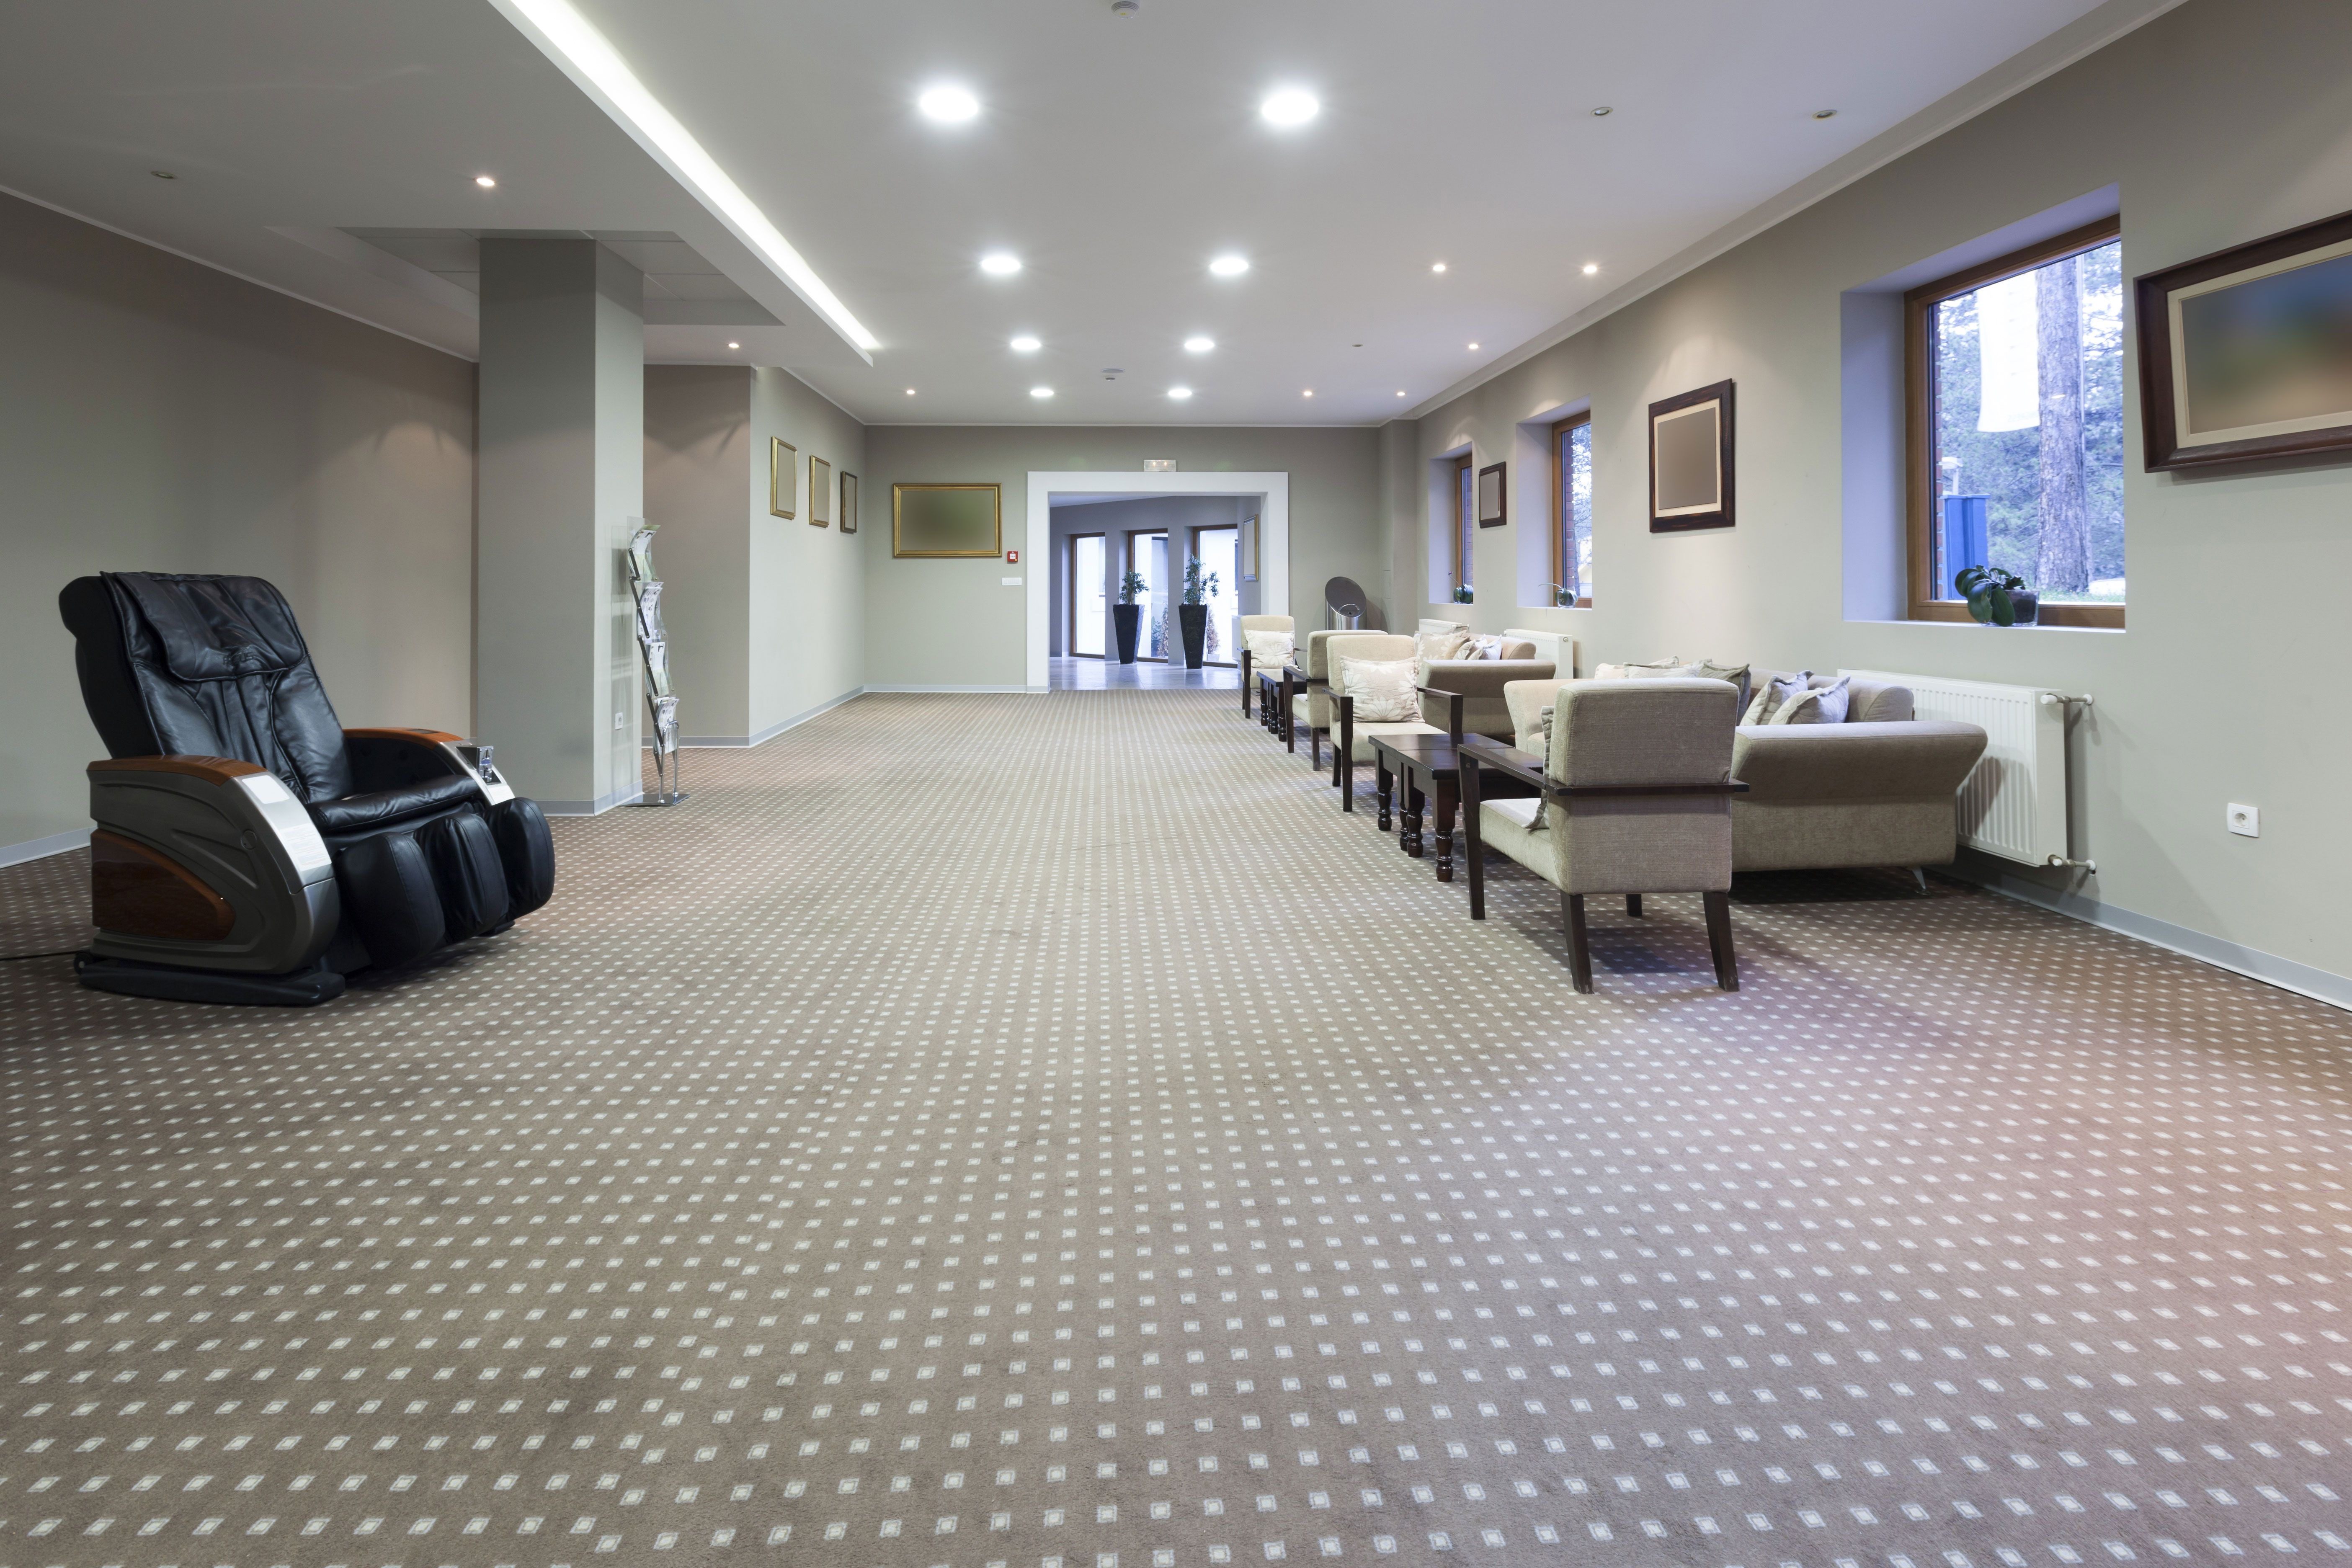 Our installation projects have included commercial carpets